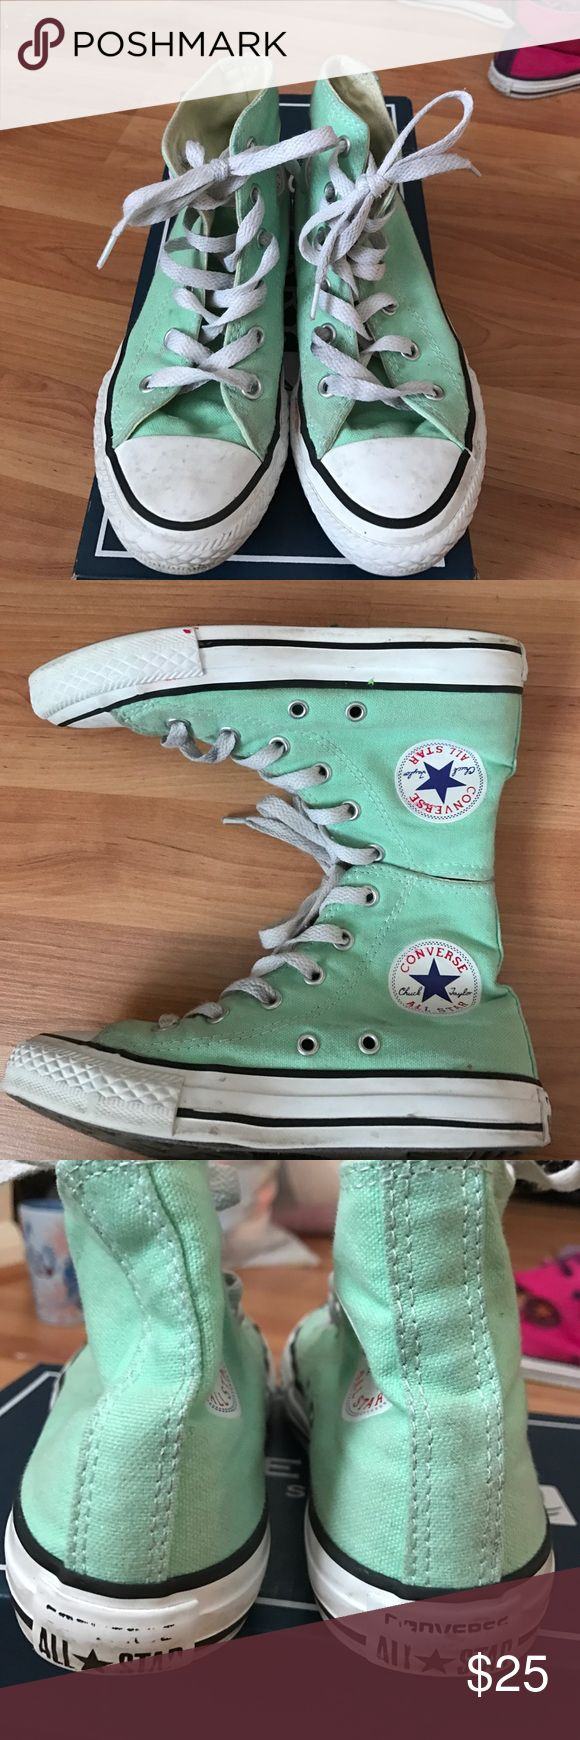 Girls Tiffany blue converse high tops Used girls all star converse high top sneakers in Tiffany blue (turquoise) size 13 Converse Shoes Sneakers